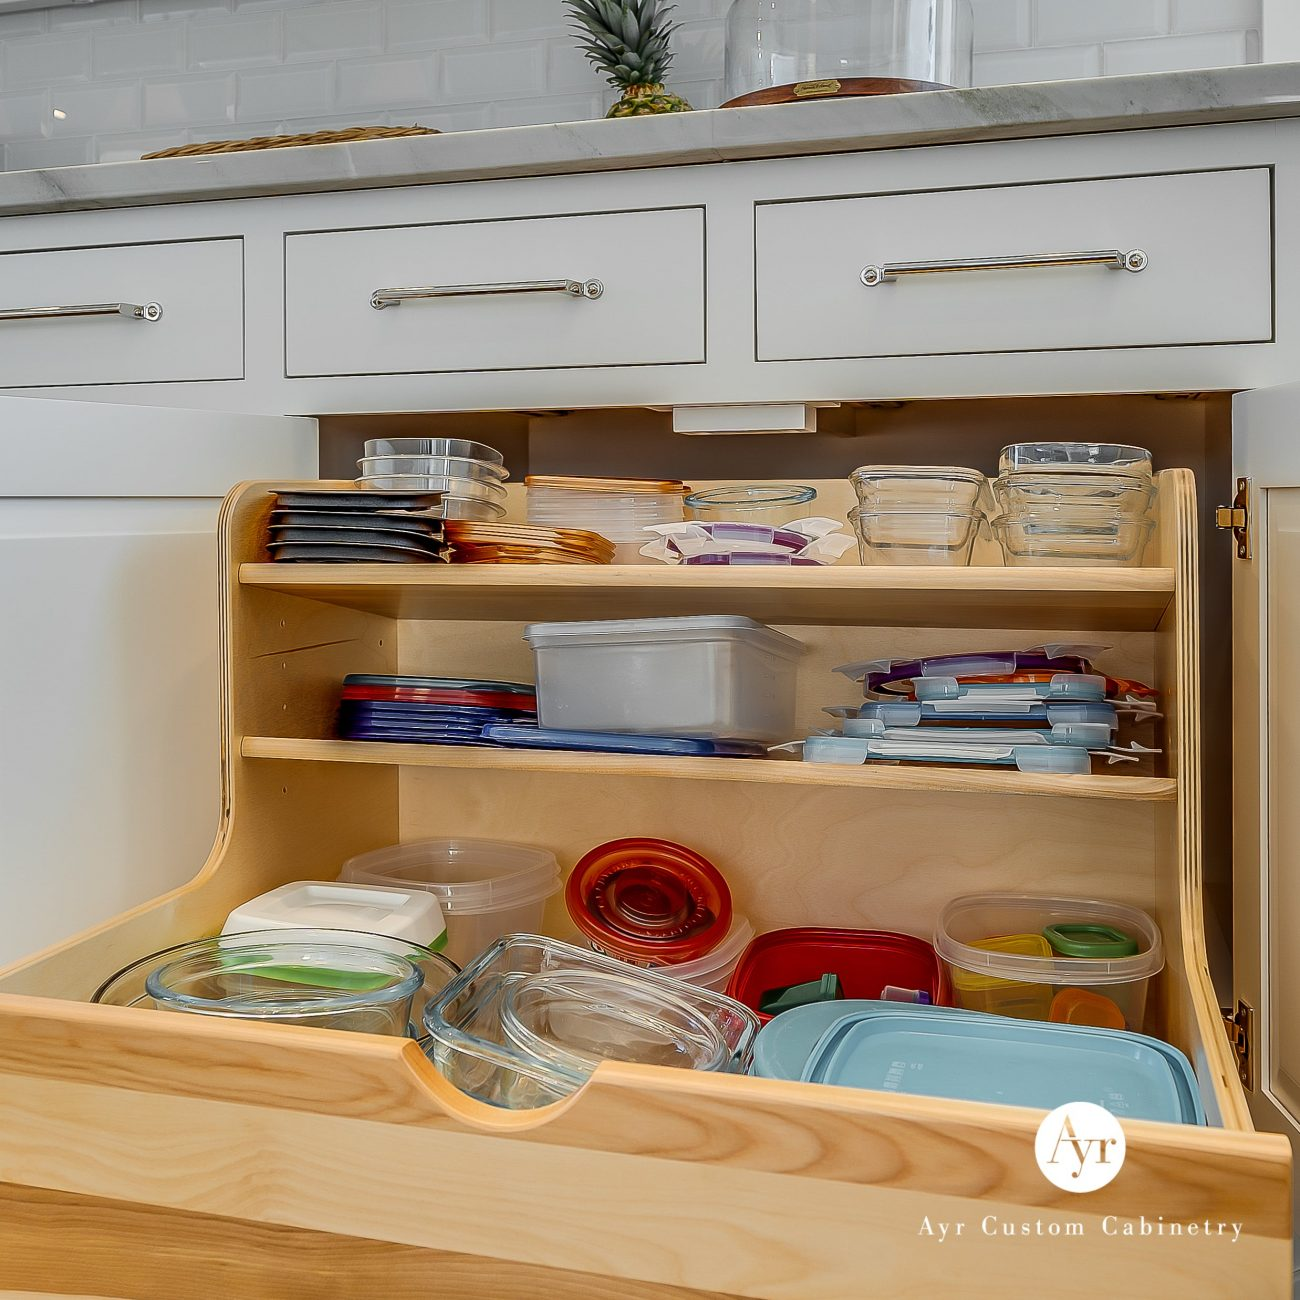 custom kitchen cabinets staley project container & lid storage roll out